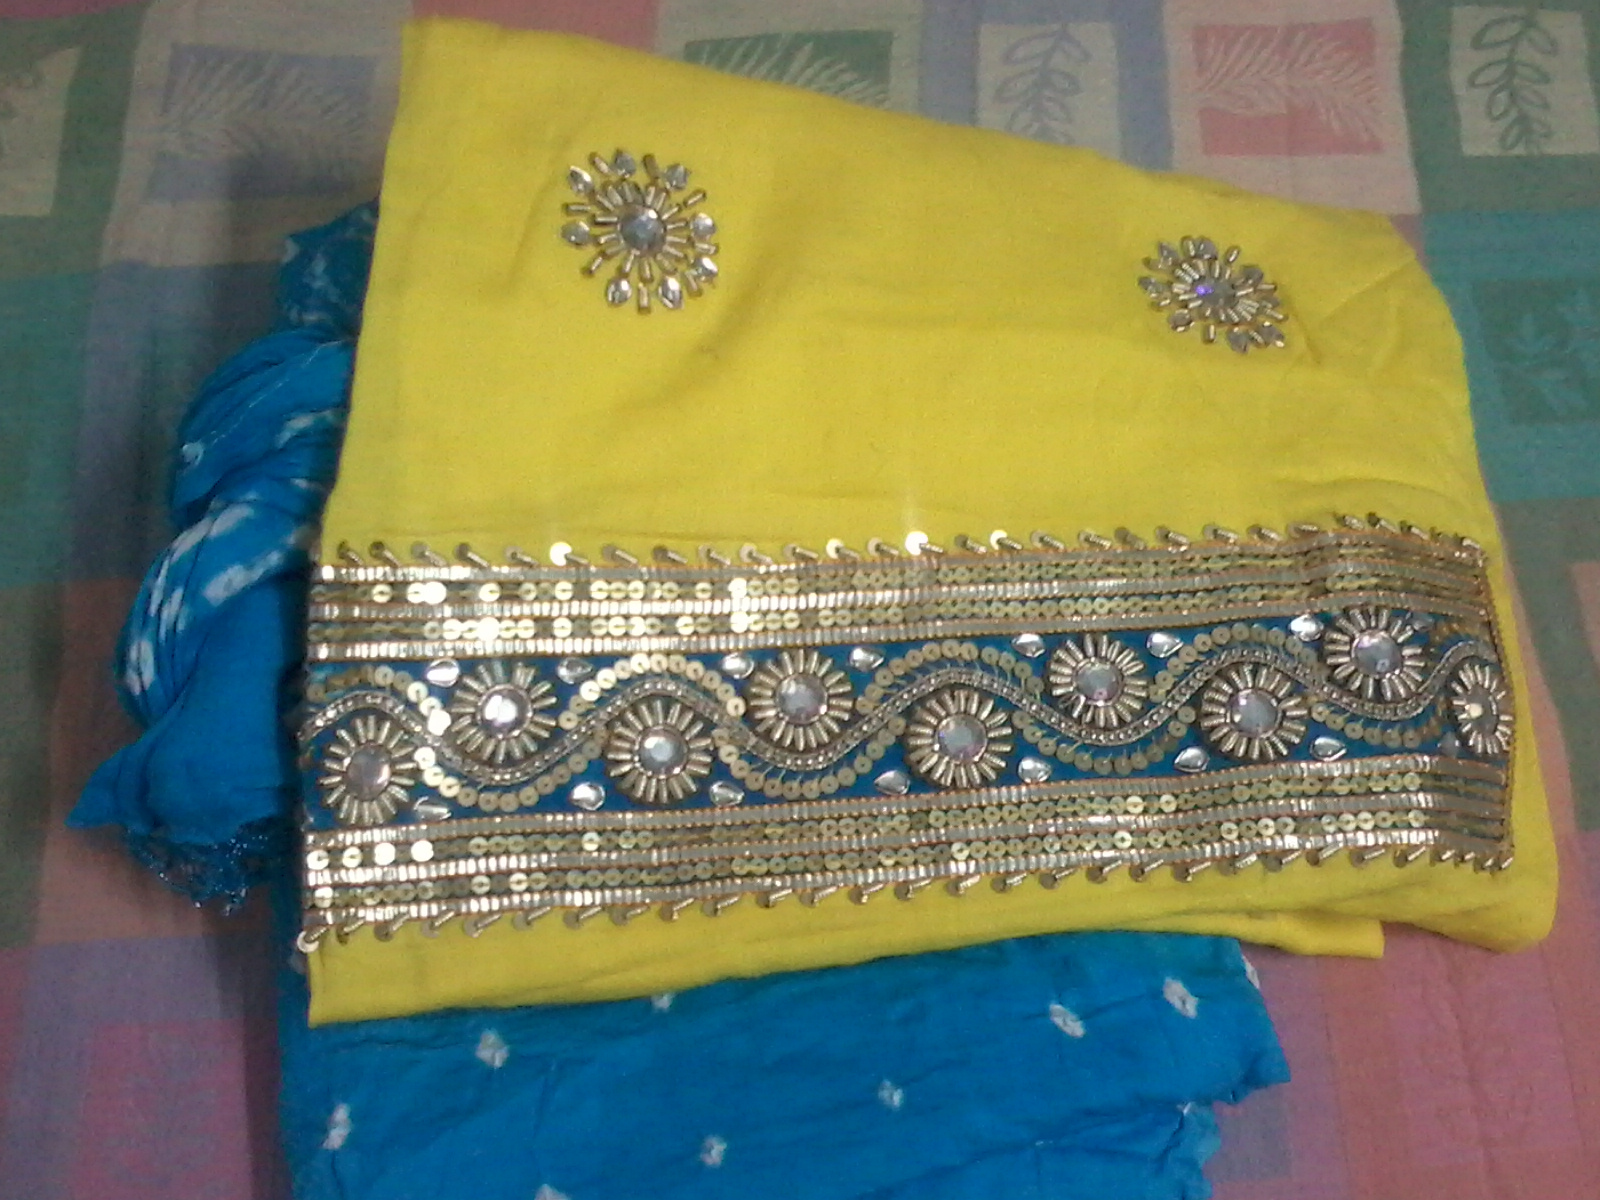 How to create scrapbook on limeroad - Its A Beautiful Set Of Yellow Kurta With Blue Bandhej Salwar Cloth And Dupatta The Kurta Has Kundan Flower Patches All Over And The Border Of Kurta Has